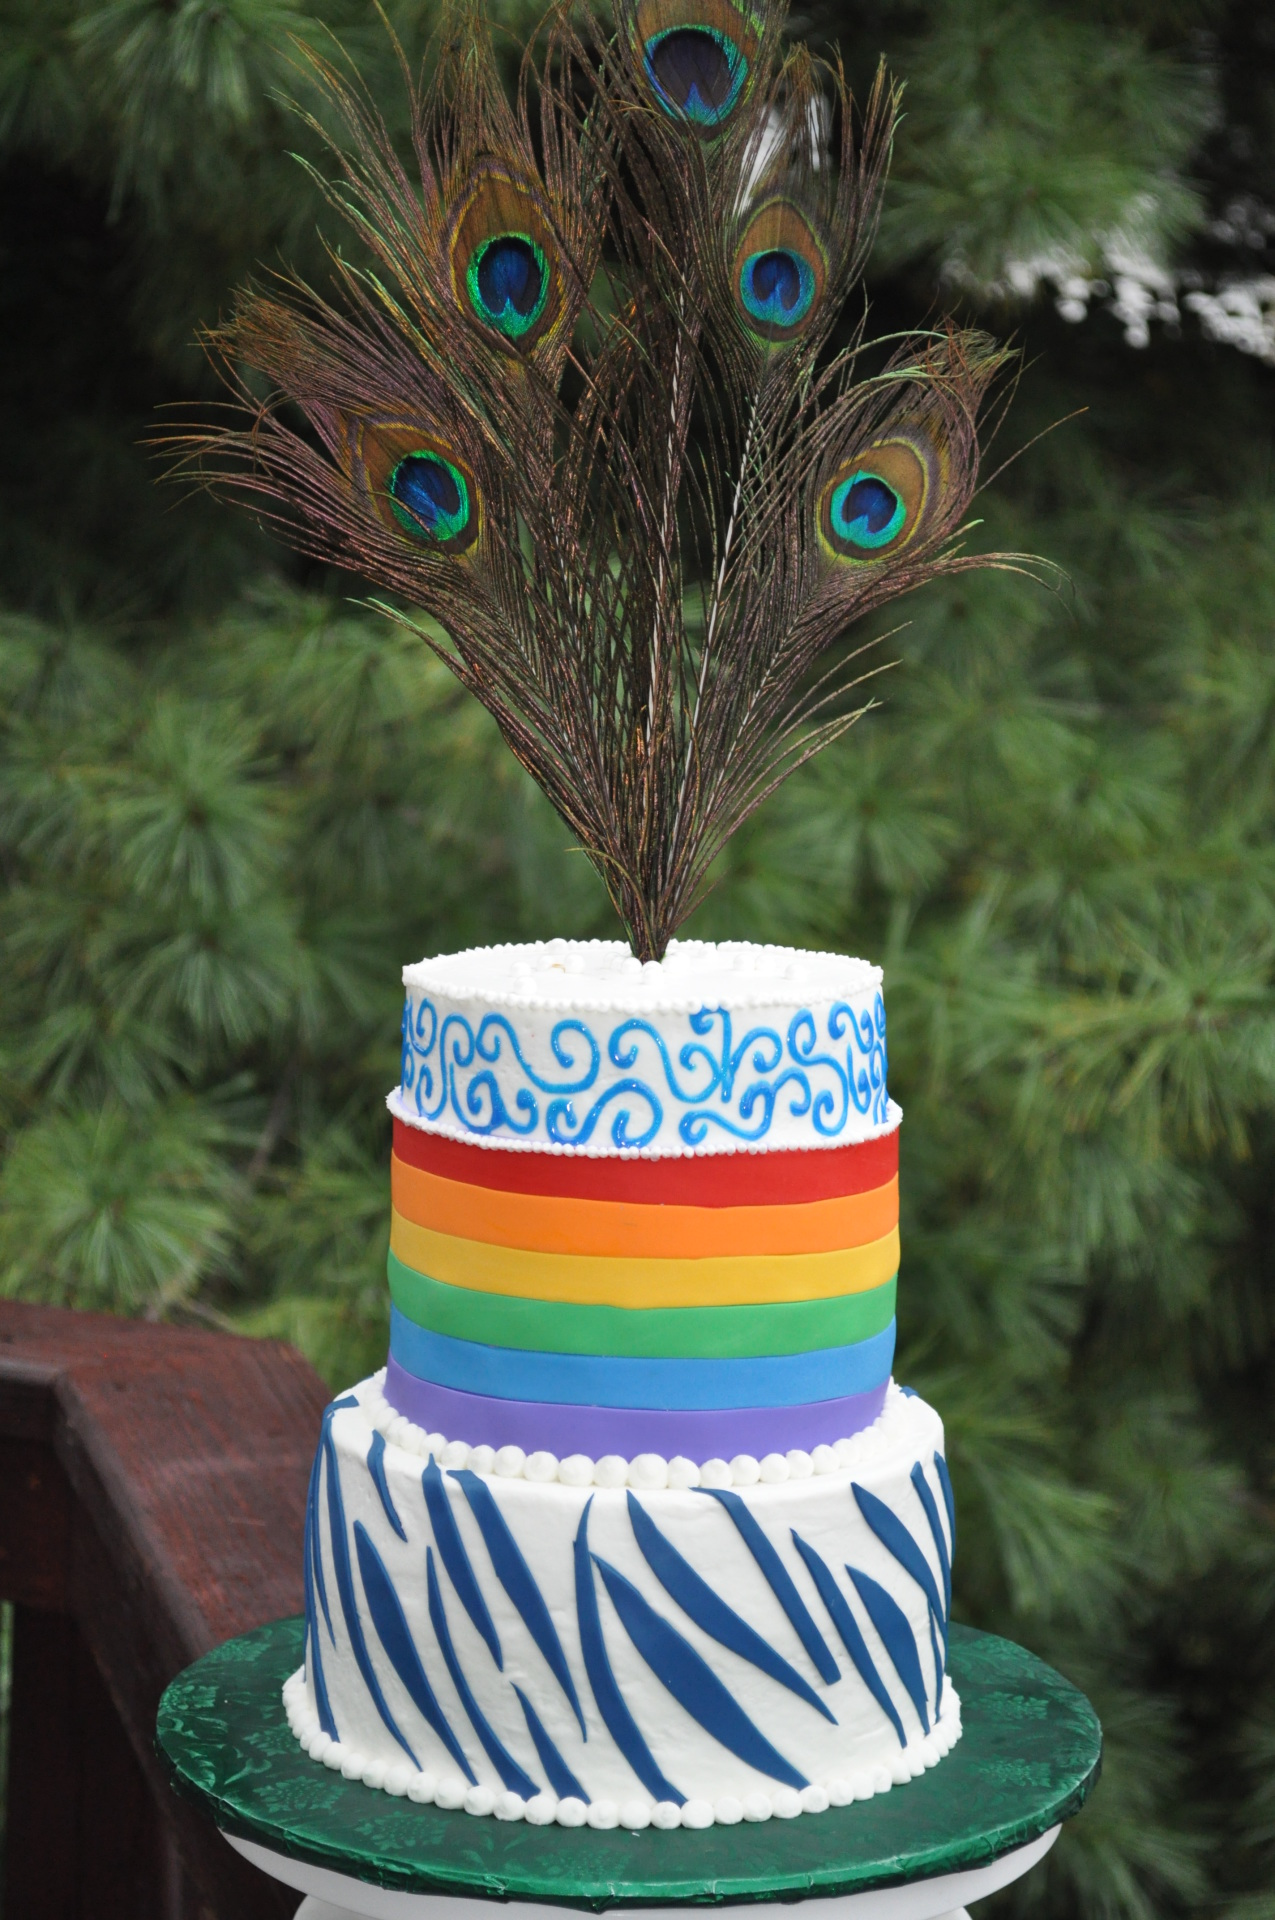 Rainbow cake, peacock feathers cake